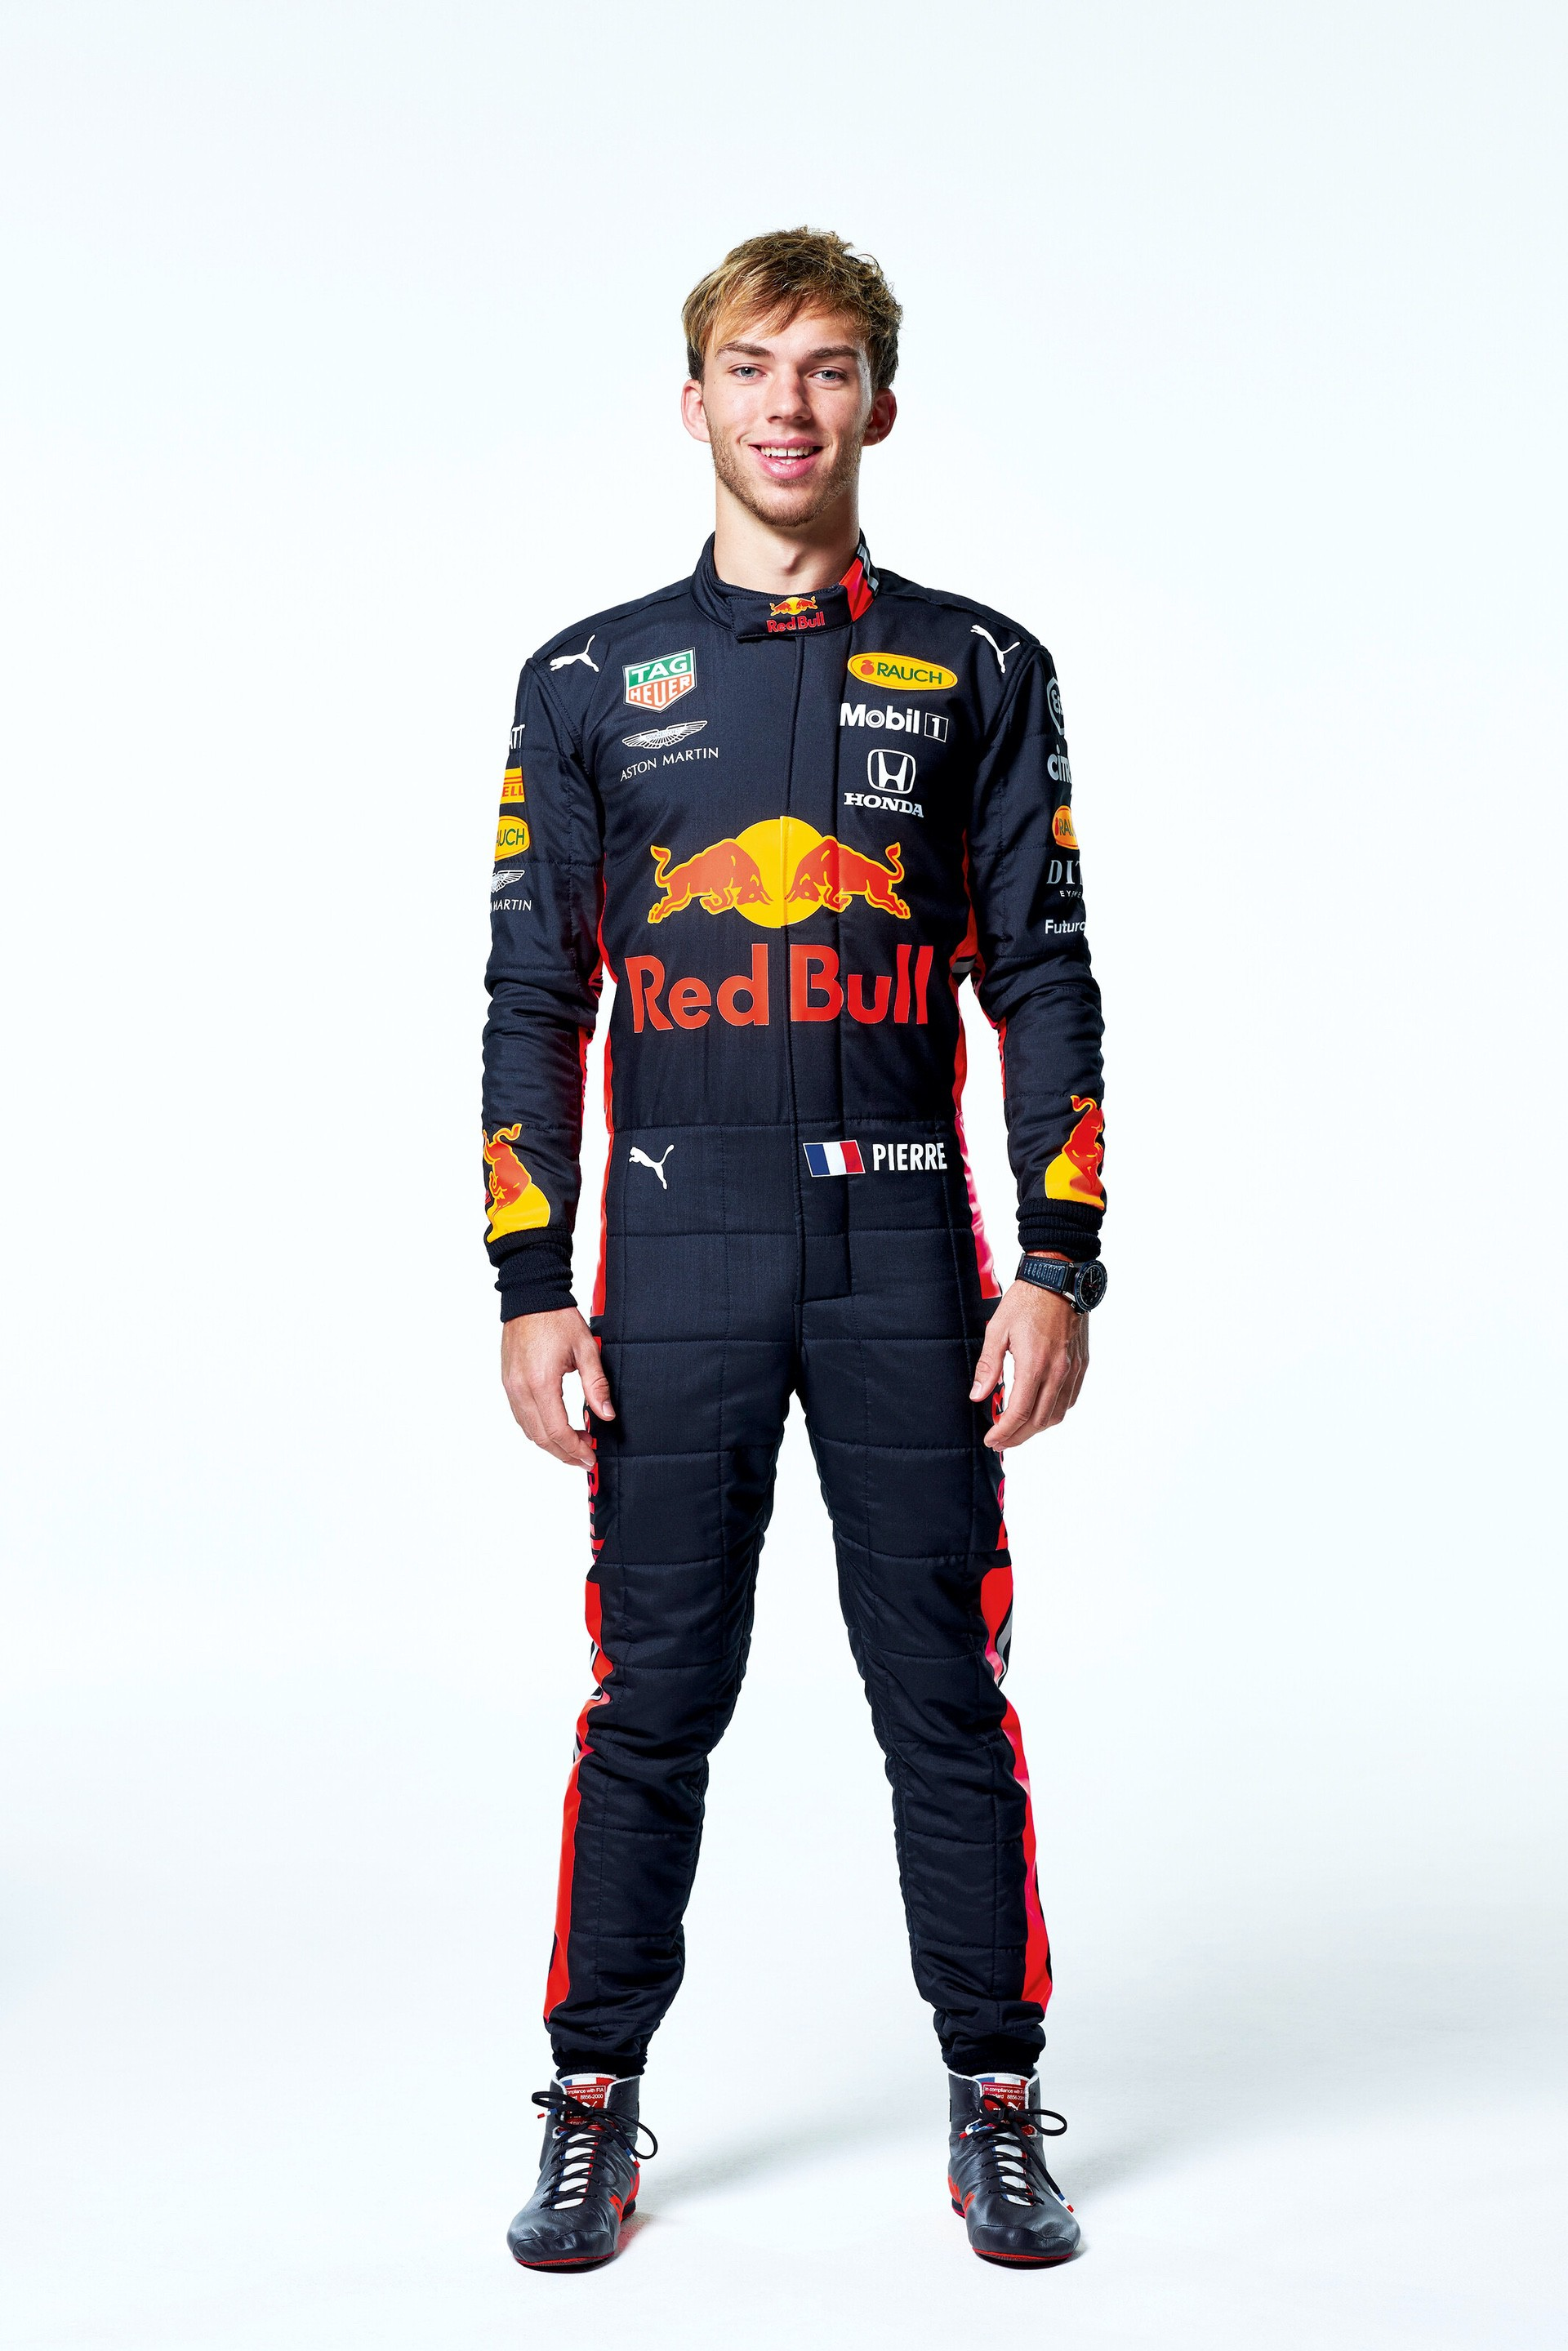 Pierre Gasly seen during the Red Bull Racing 2019 Studio Shoot, February 2019, United Kingdom // Dustin Snipes/Red Bull Content Pool // AP-1YFPFH9X91W11 // Usage for editorial use only // Please go to www.redbullcontentpool.com for further information. //